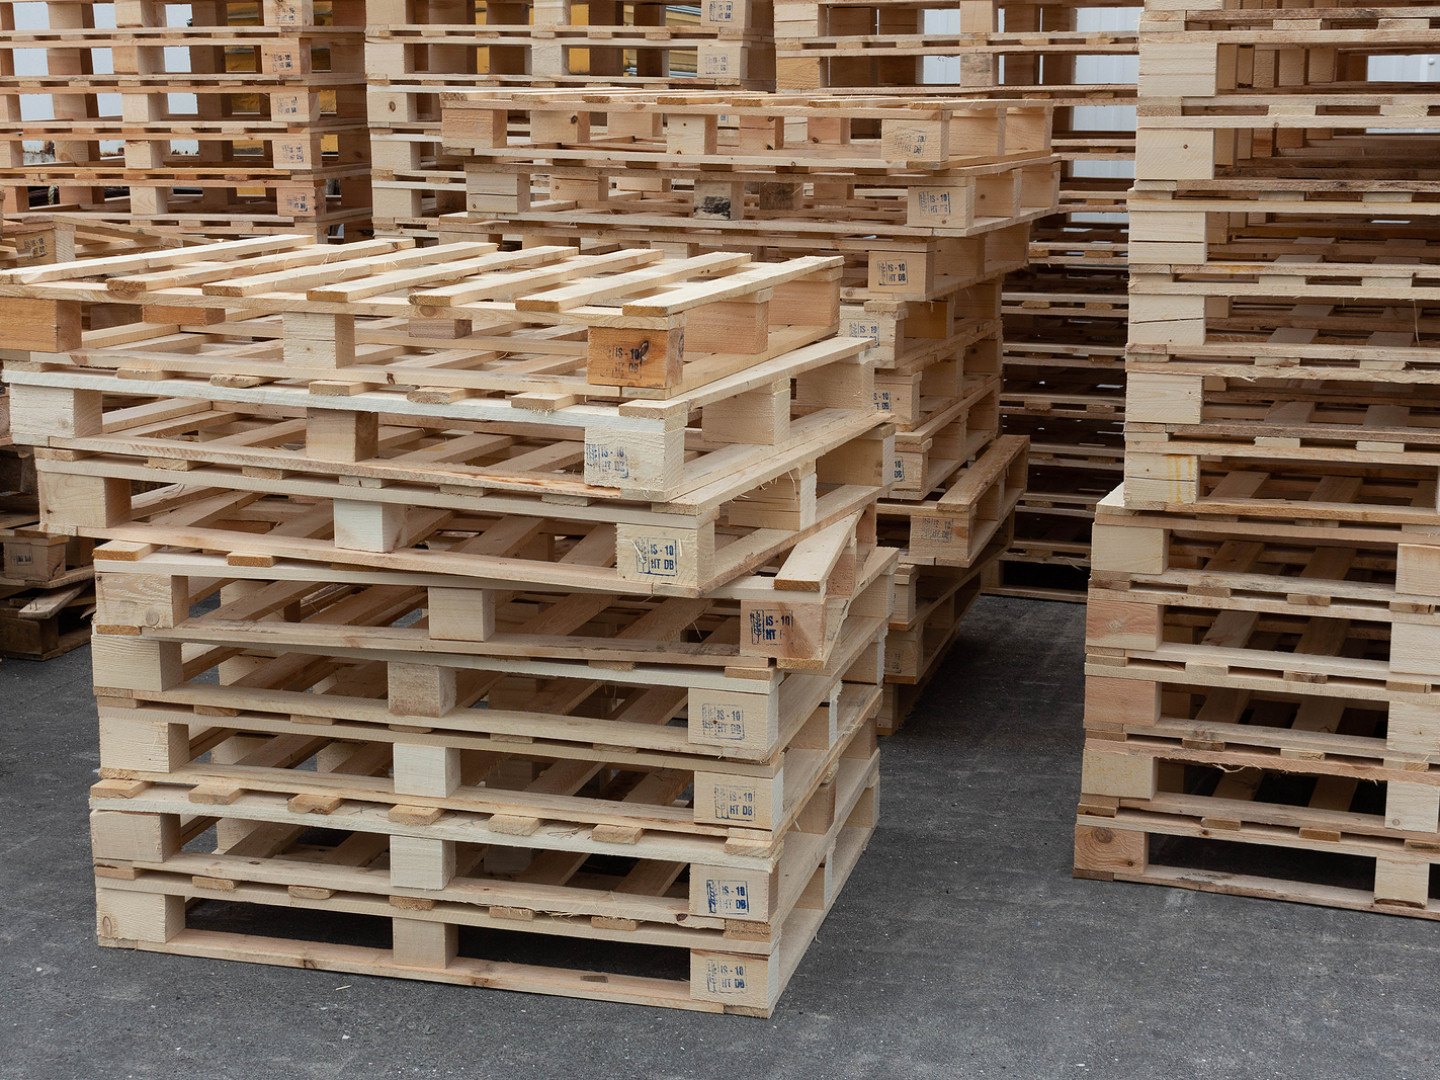 wooden pallet supplier temple tx and waco tx